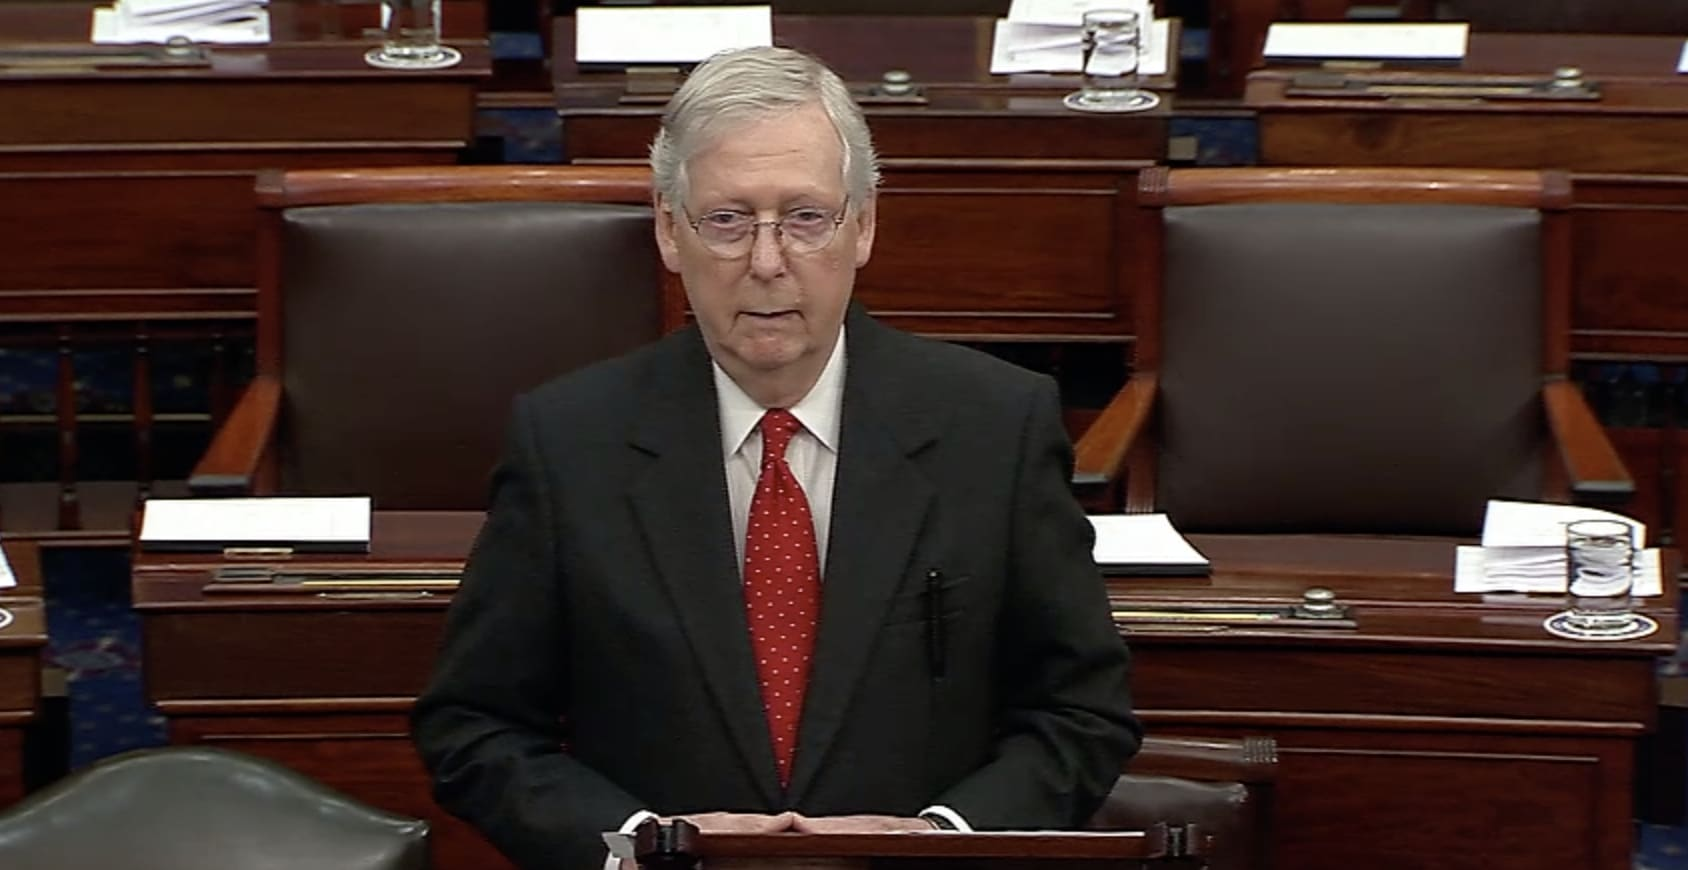 'Caught bluffing': See Trump trial begin as GOP Sen. McConnell backs down on rules